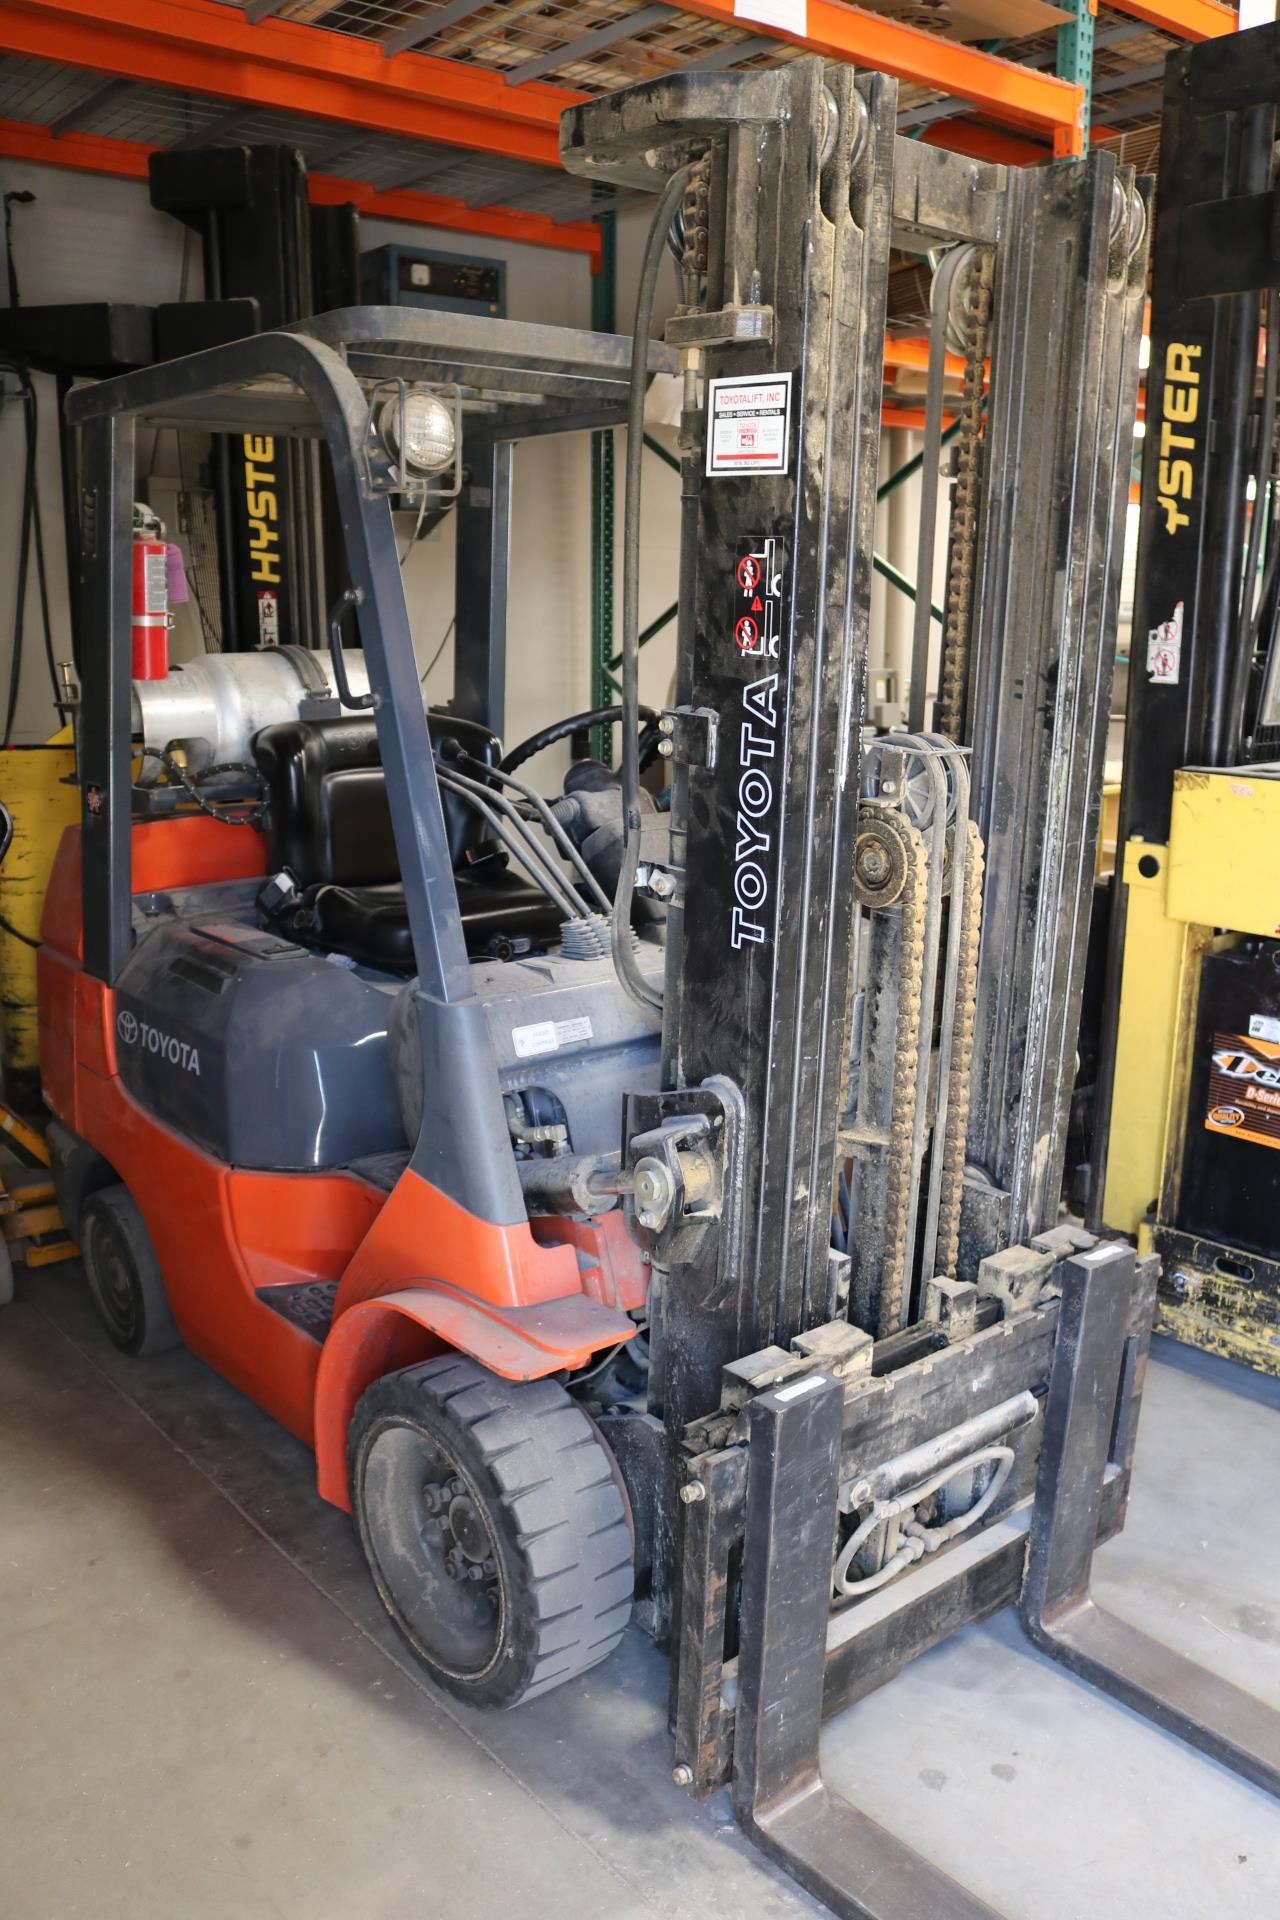 PRO AUDIO SPEAKER MANUFACTURER, 2018 LAGUNA ROUTERS, SCHELLING PANEL SAW, TOYOTA & HYSTER FORKLIFTS - Image 13 of 50